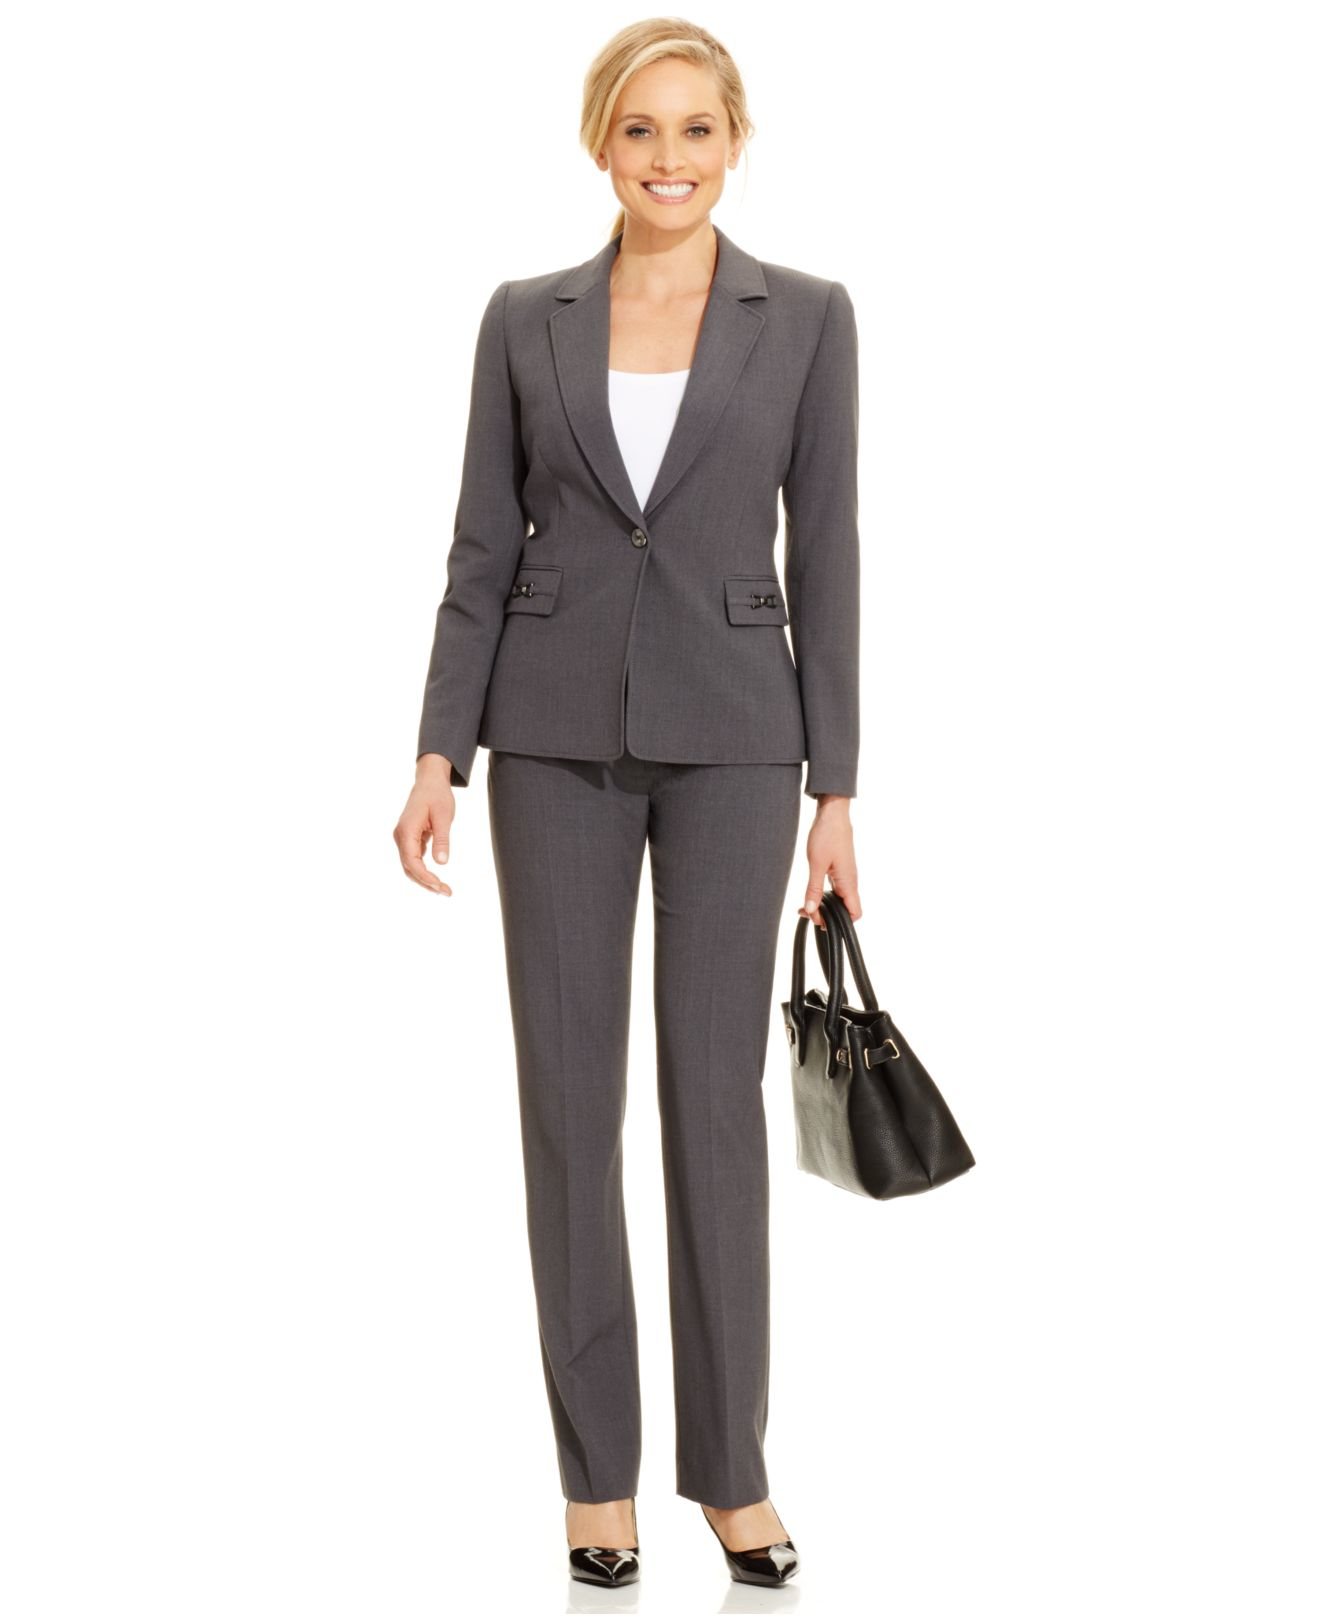 tahari one button hardware detail pantsuit in gray lyst gallery